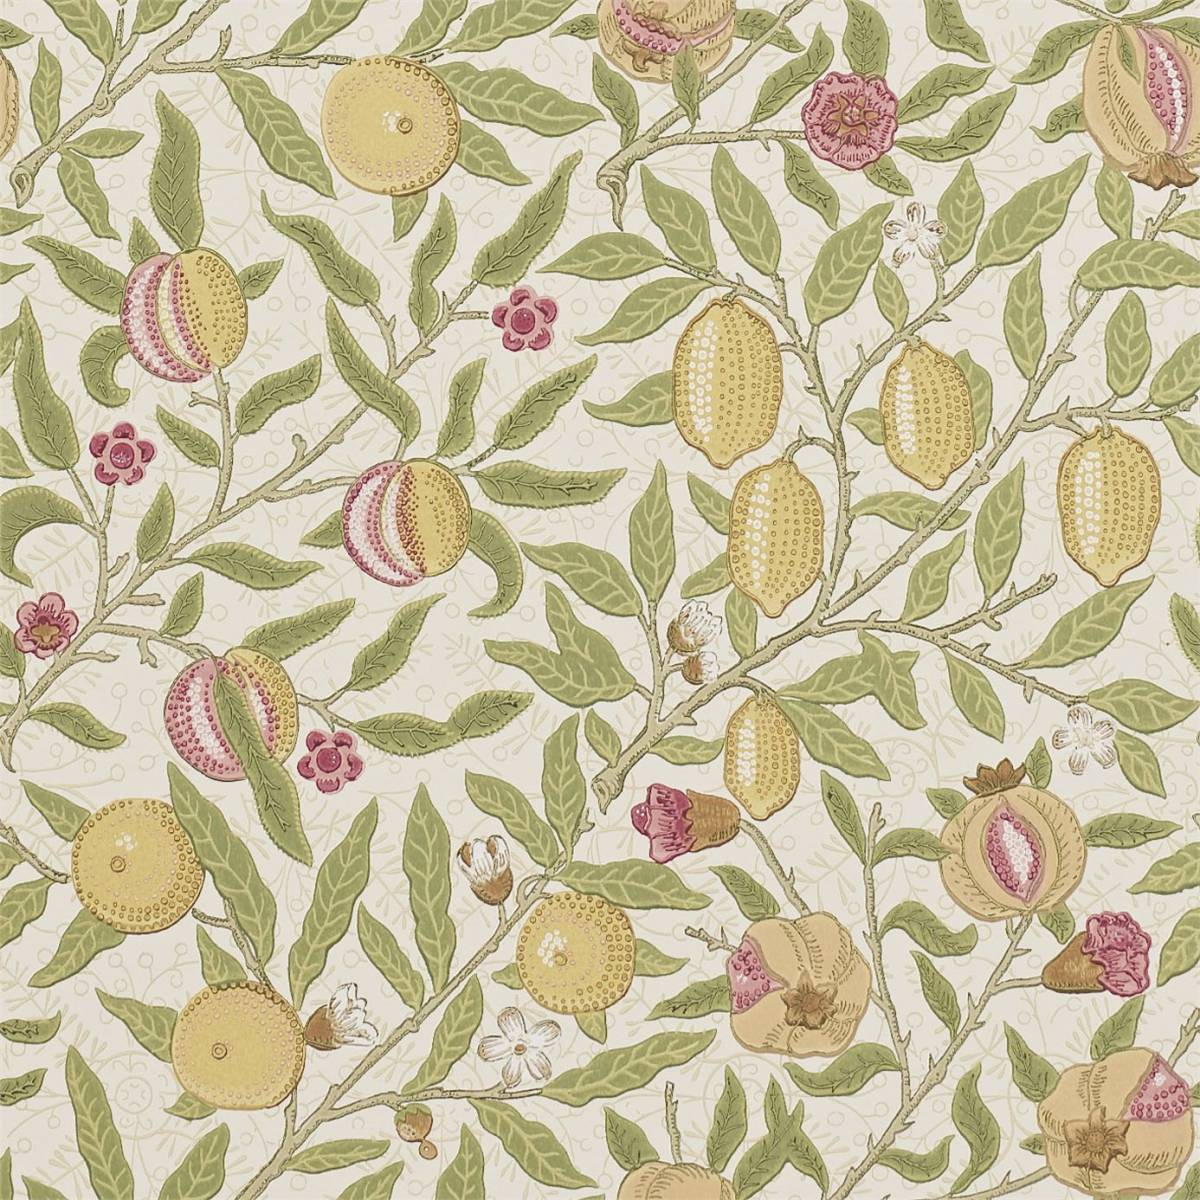 fruit wallpaper limestone artichoke 210395 william morris co archive wallpapers collection. Black Bedroom Furniture Sets. Home Design Ideas